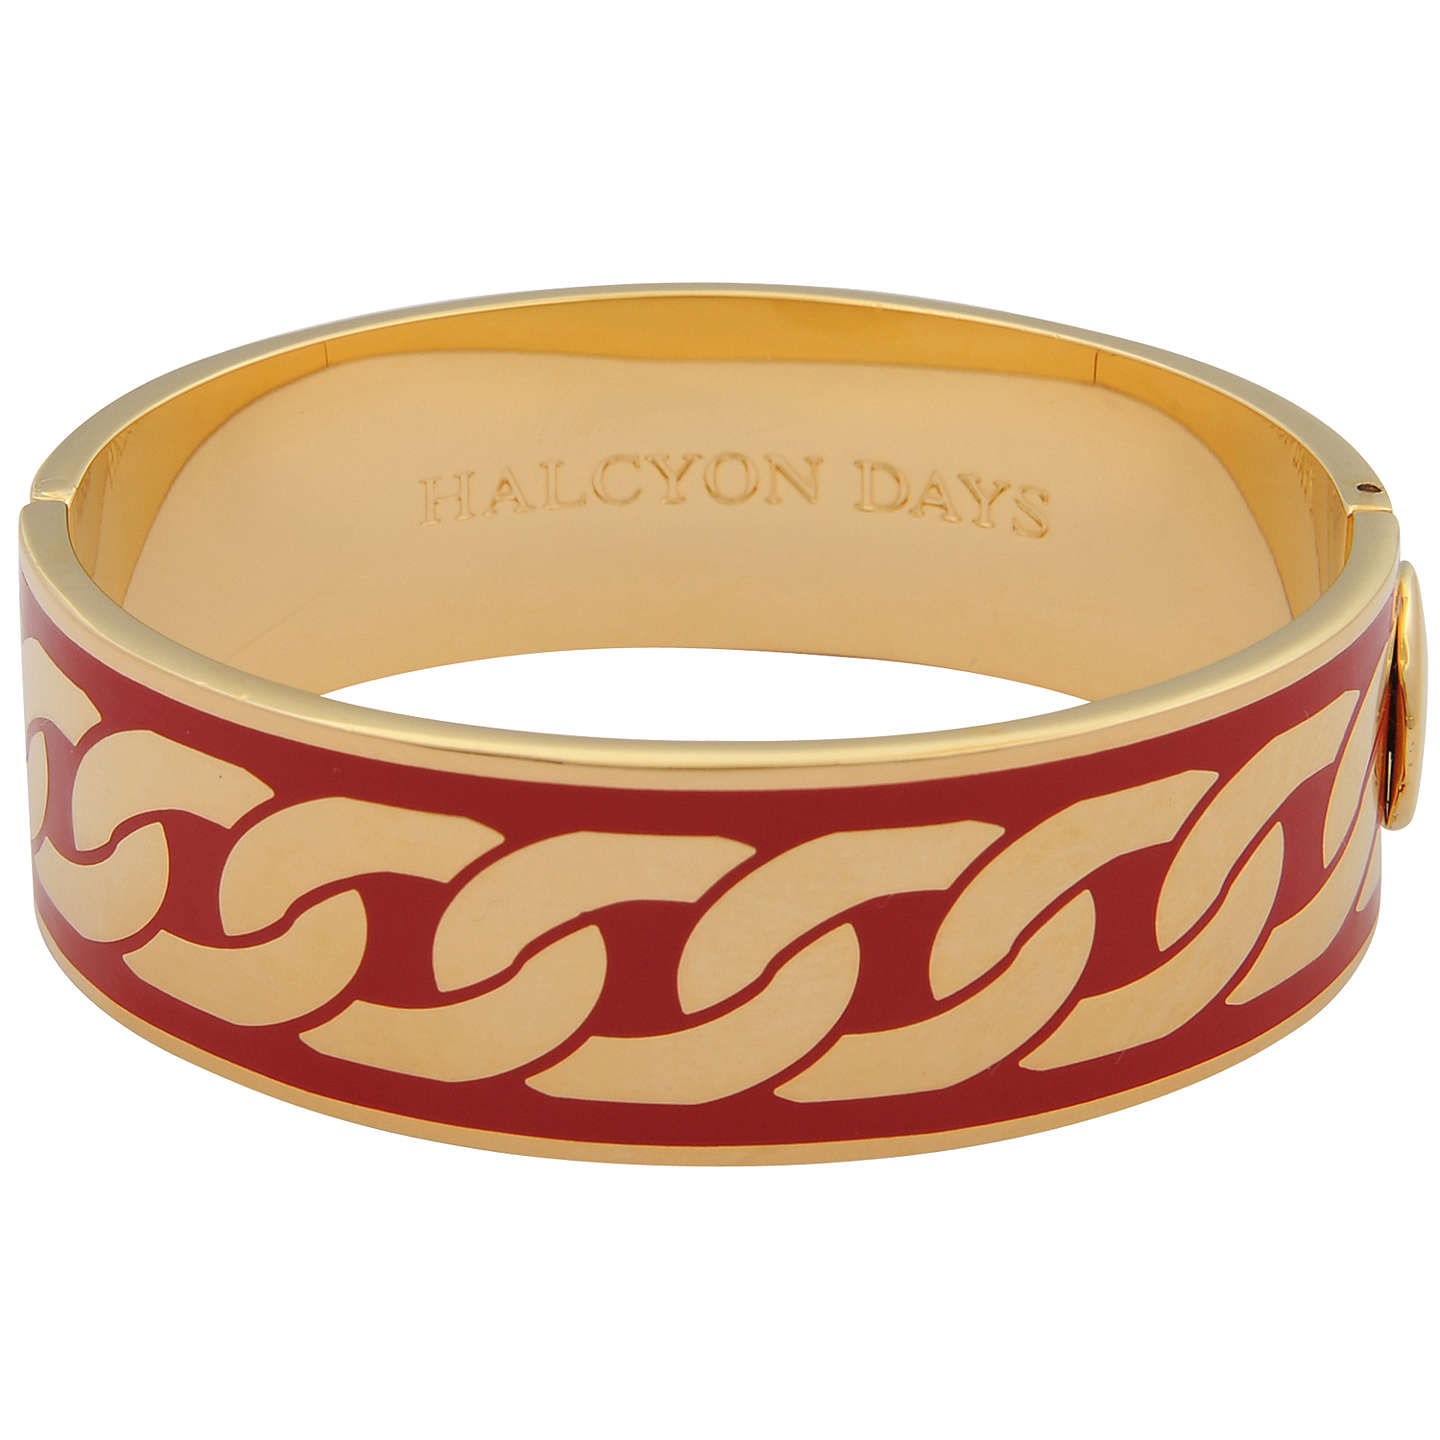 BuyHalcyon Days Curb Chain Hinge Bangle, Red/Gold Online at johnlewis.com